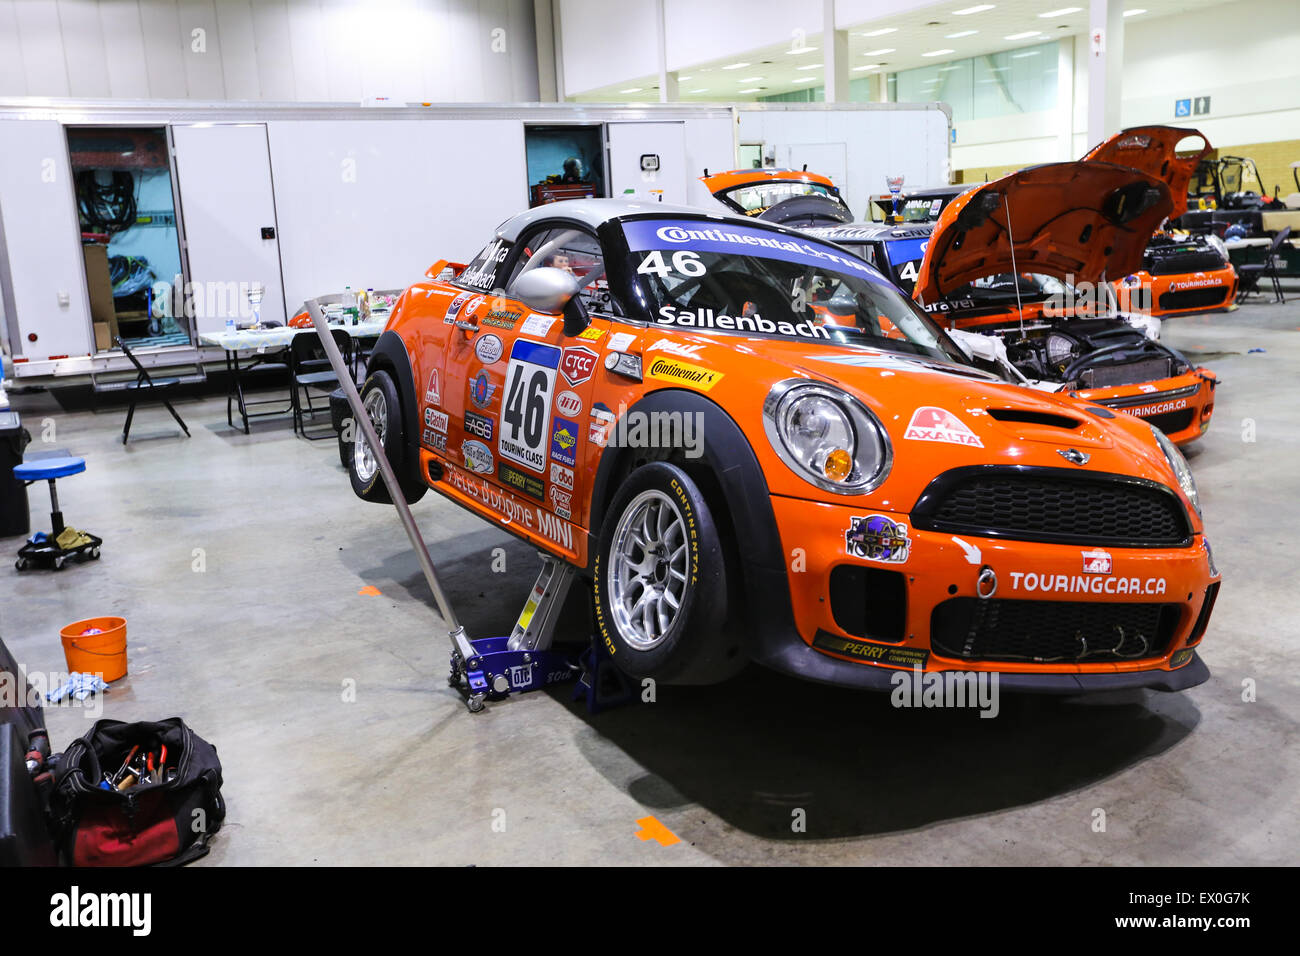 Mini cooper race car jacked up for repair Stock Photo: 84835287 - Alamy